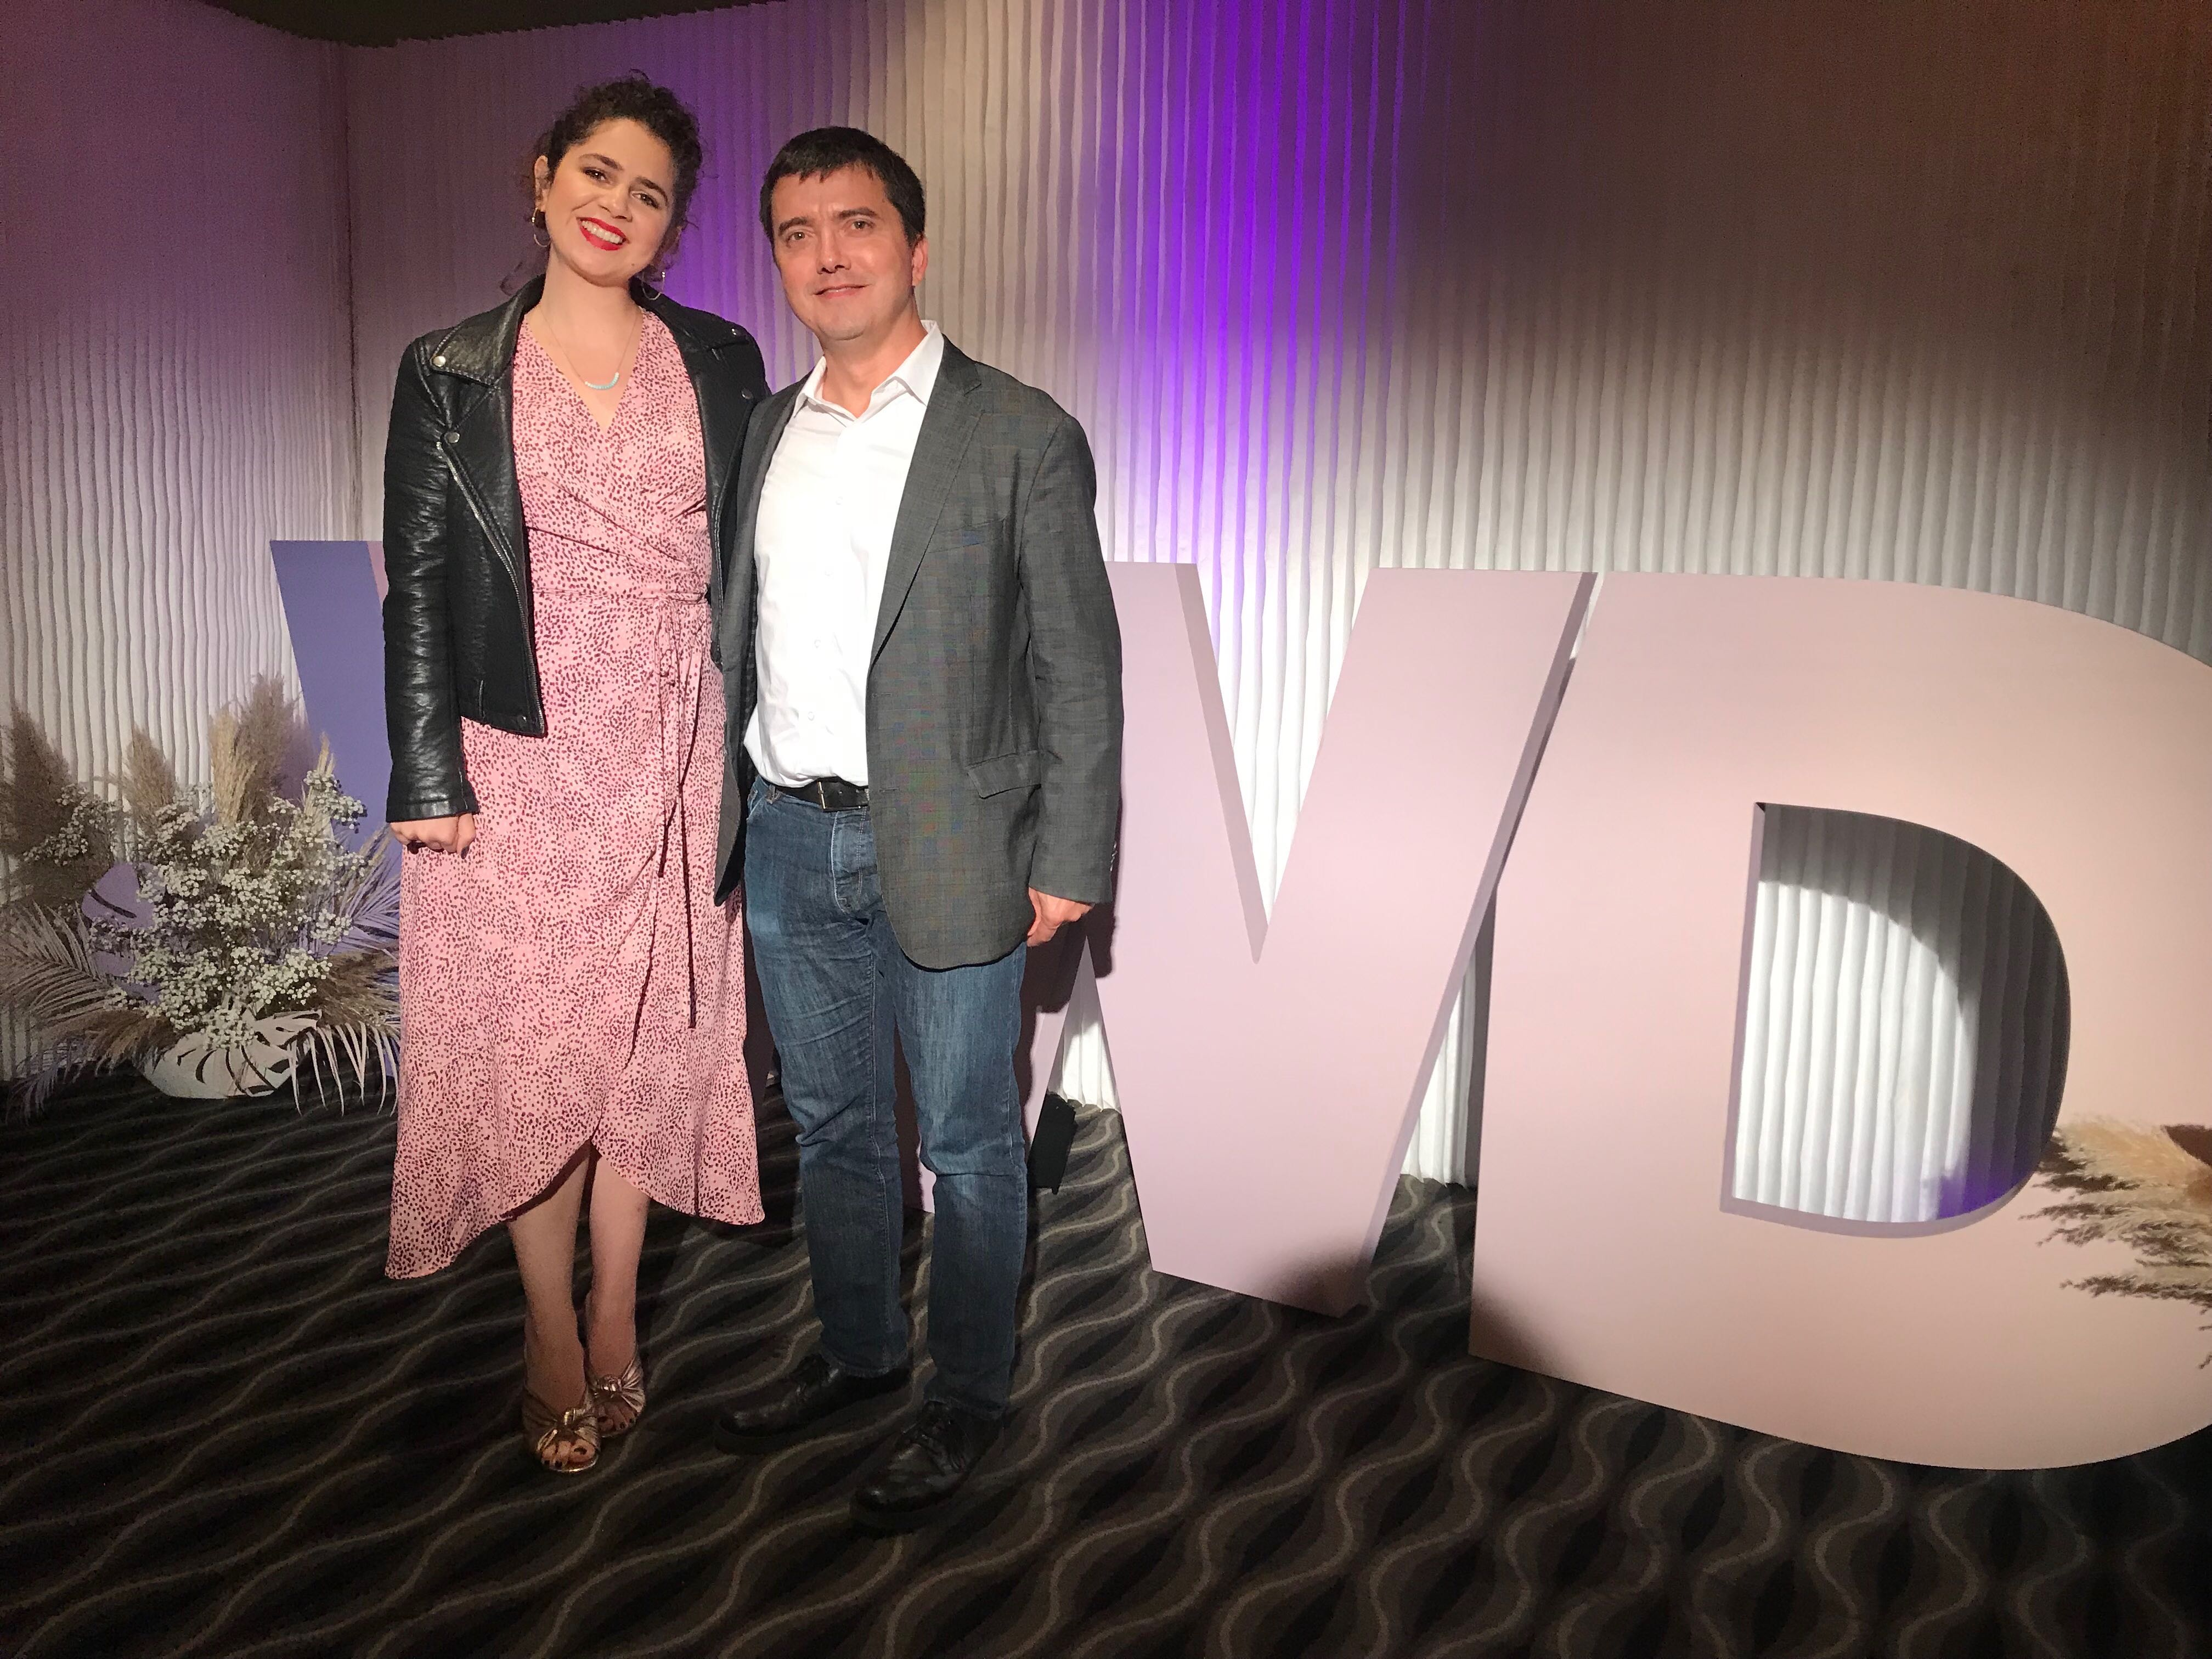 aylor Hiskey, Social Media Director for Urban Decay Cosmetics (UD) and Pierre-Loic Assayag, CEO and Cofounder of Traackr, at WWD's Digital Forum.